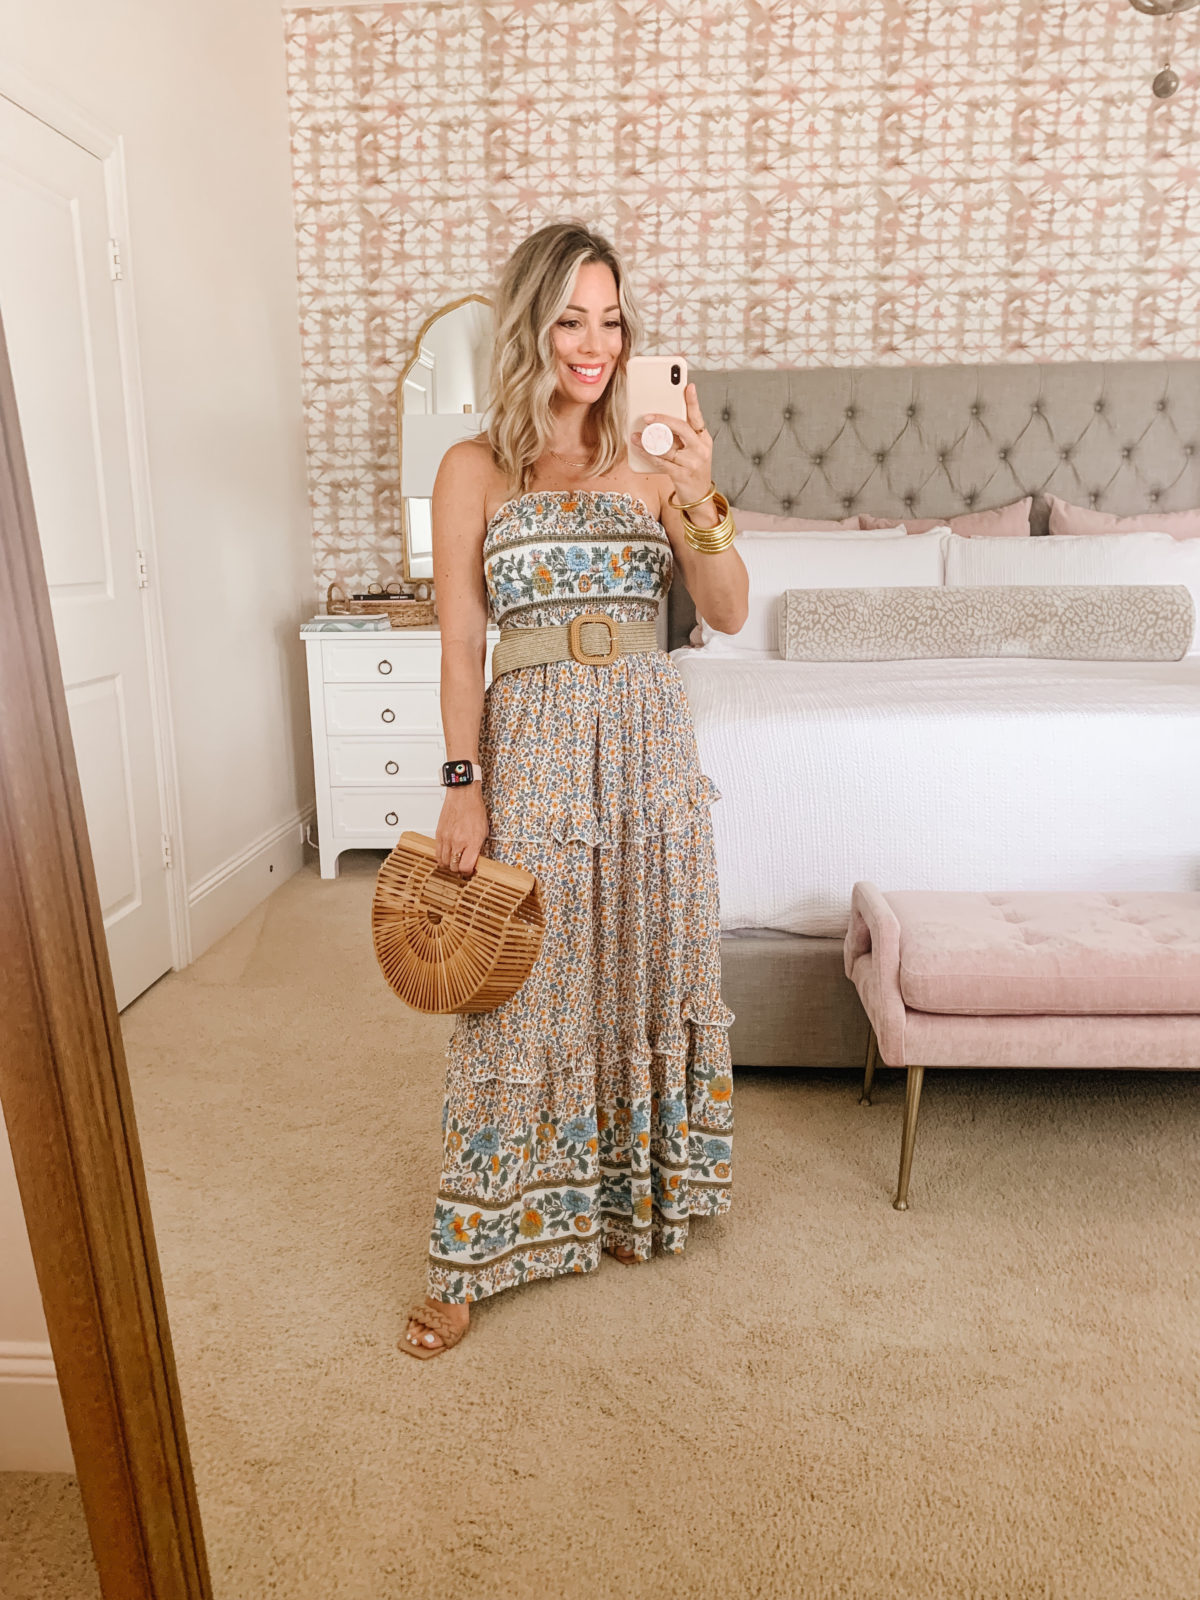 Amazon Fashion Faves, Smocked Floral Maxi Dress and Stretchy Belt with Bamboo Clutch